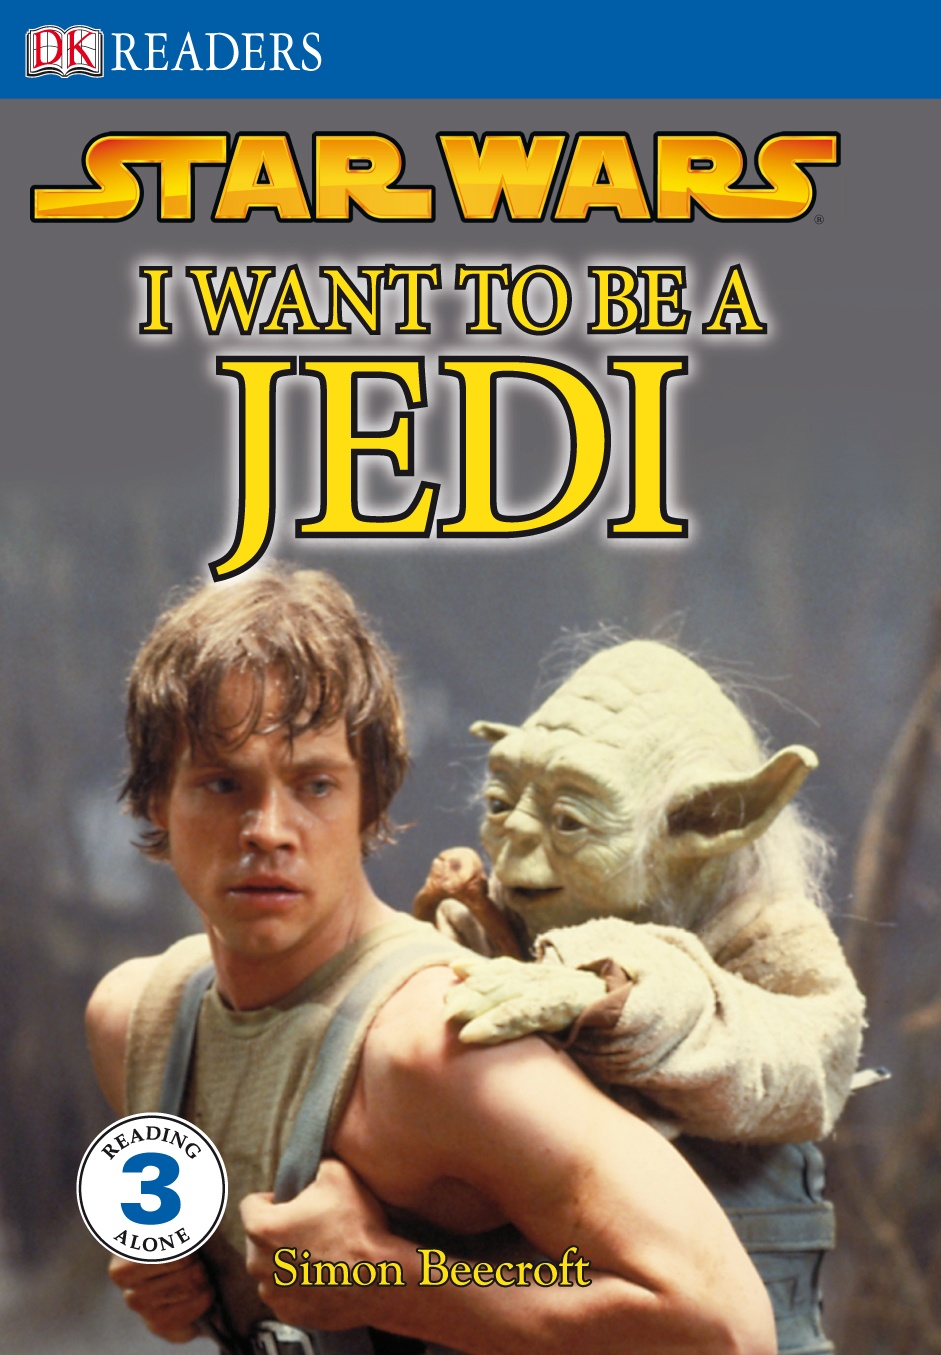 Star Wars: I Want to Be a Jedi (2007)